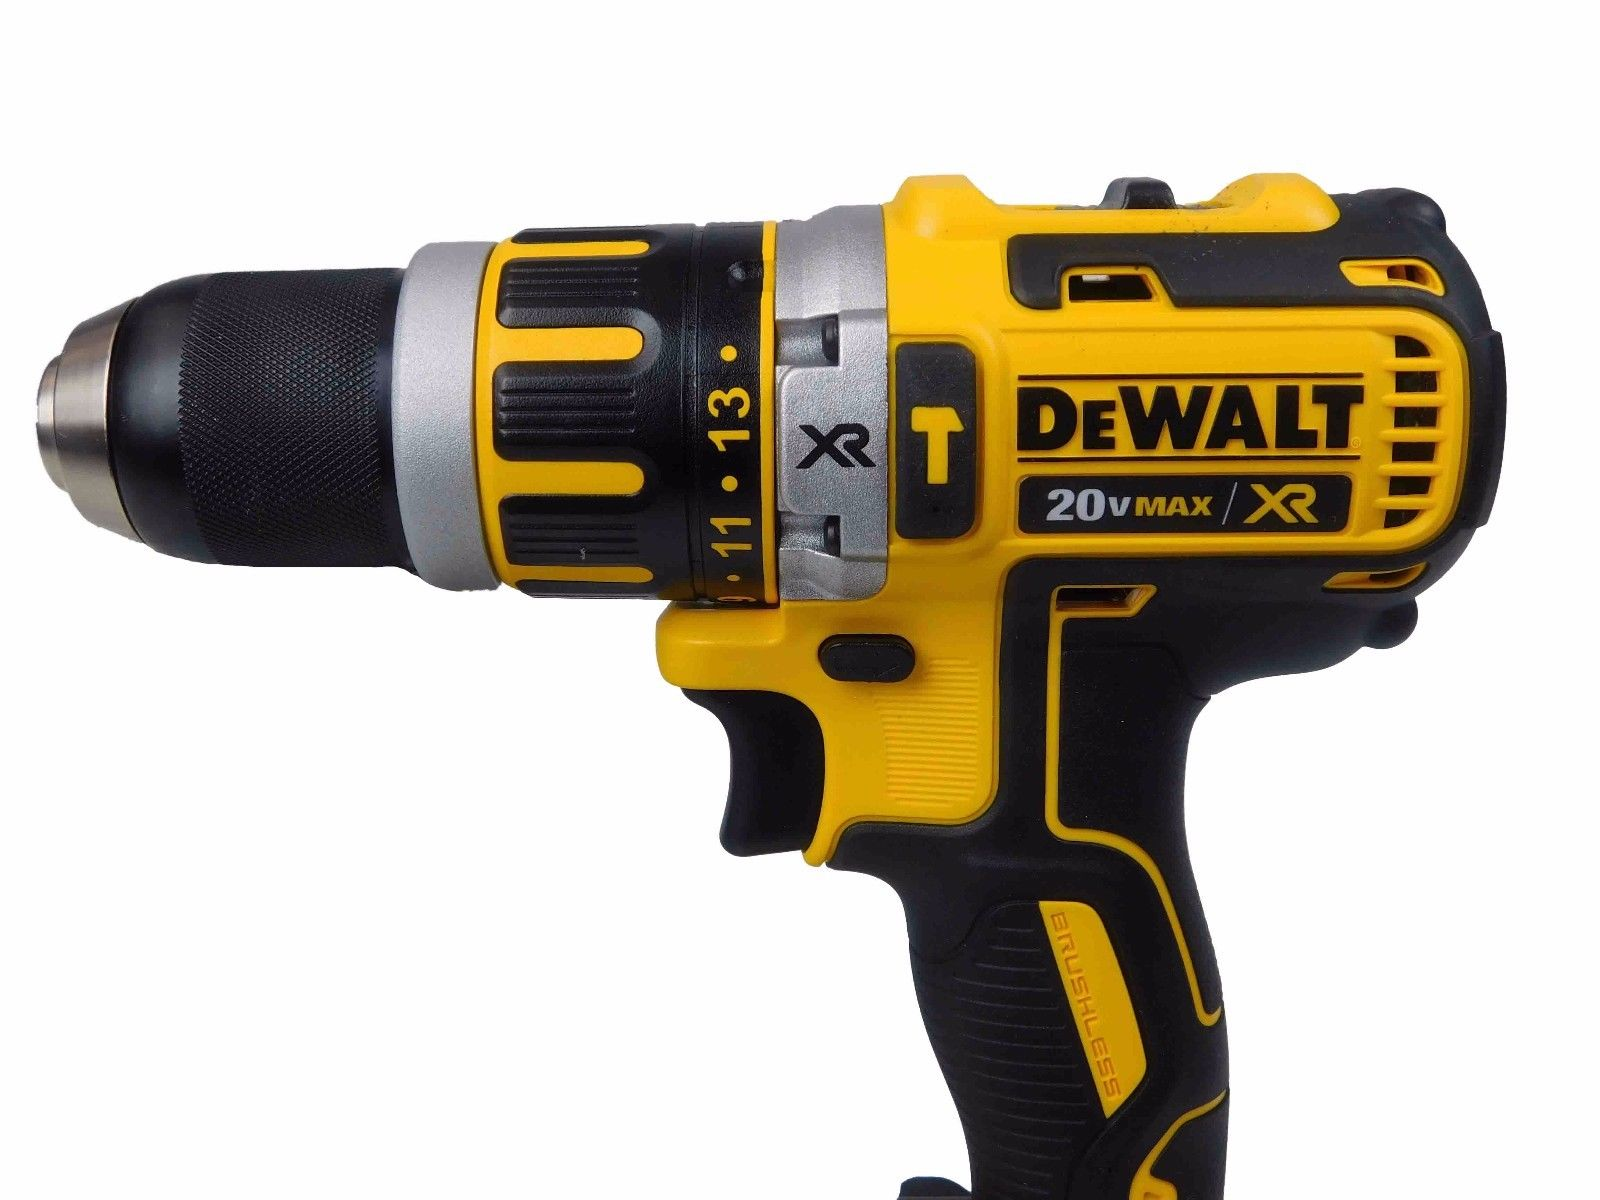 Dewalt-DCD796B-20V-Max-Xr-Lithium-ion-1-2-Cordless-Brushless-Compact-image-3